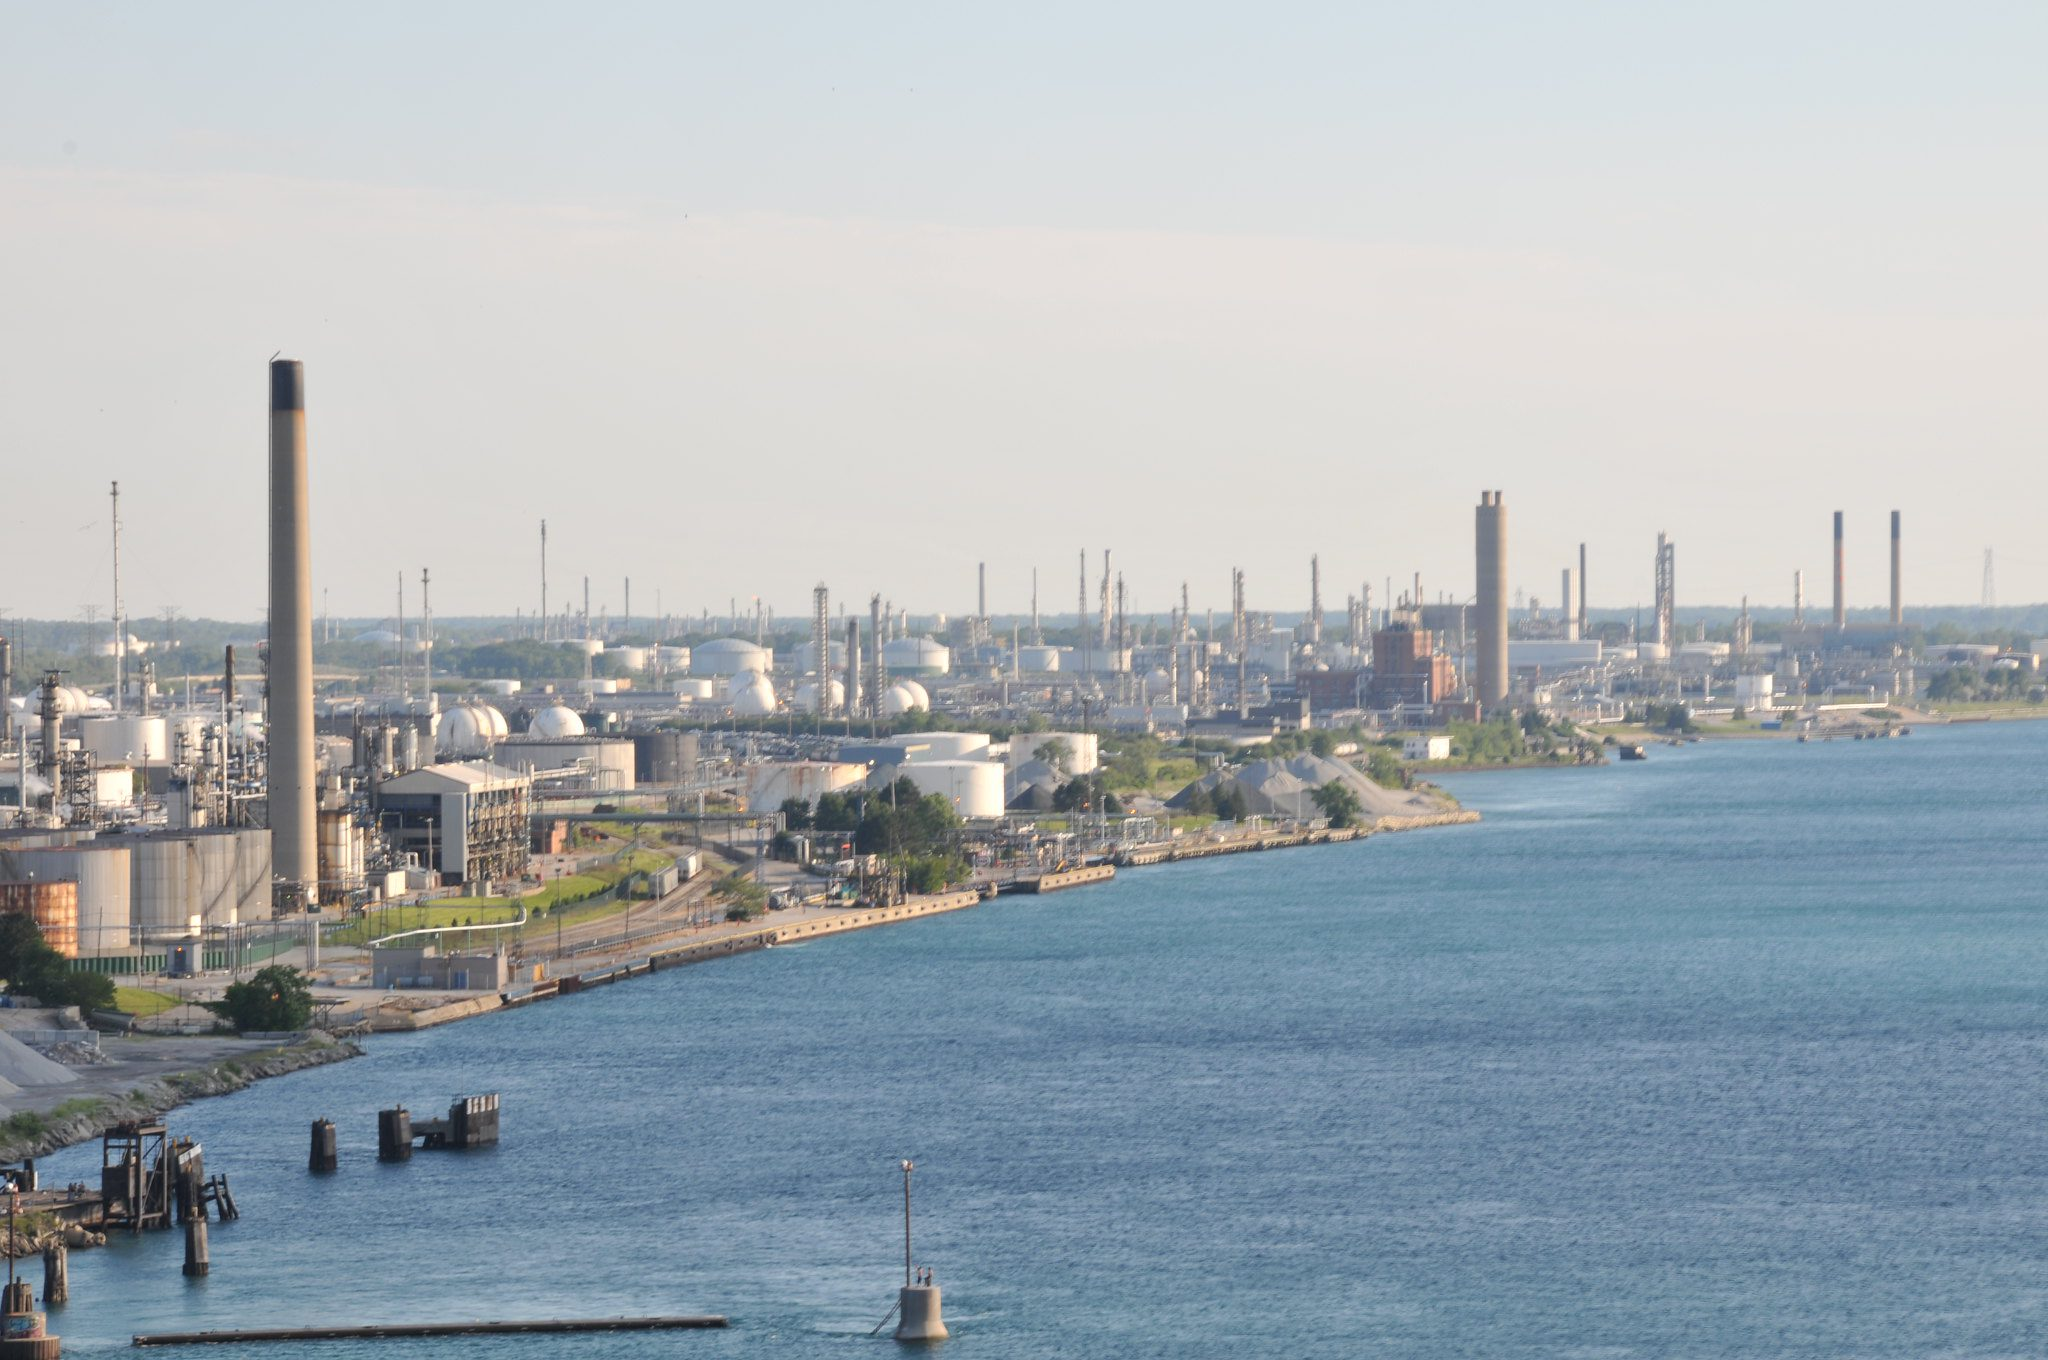 In 2004, a massive spill by Imperial Oil in Sarnia leaked 250,000 litres of volatile chemicals into the St.Clair River.